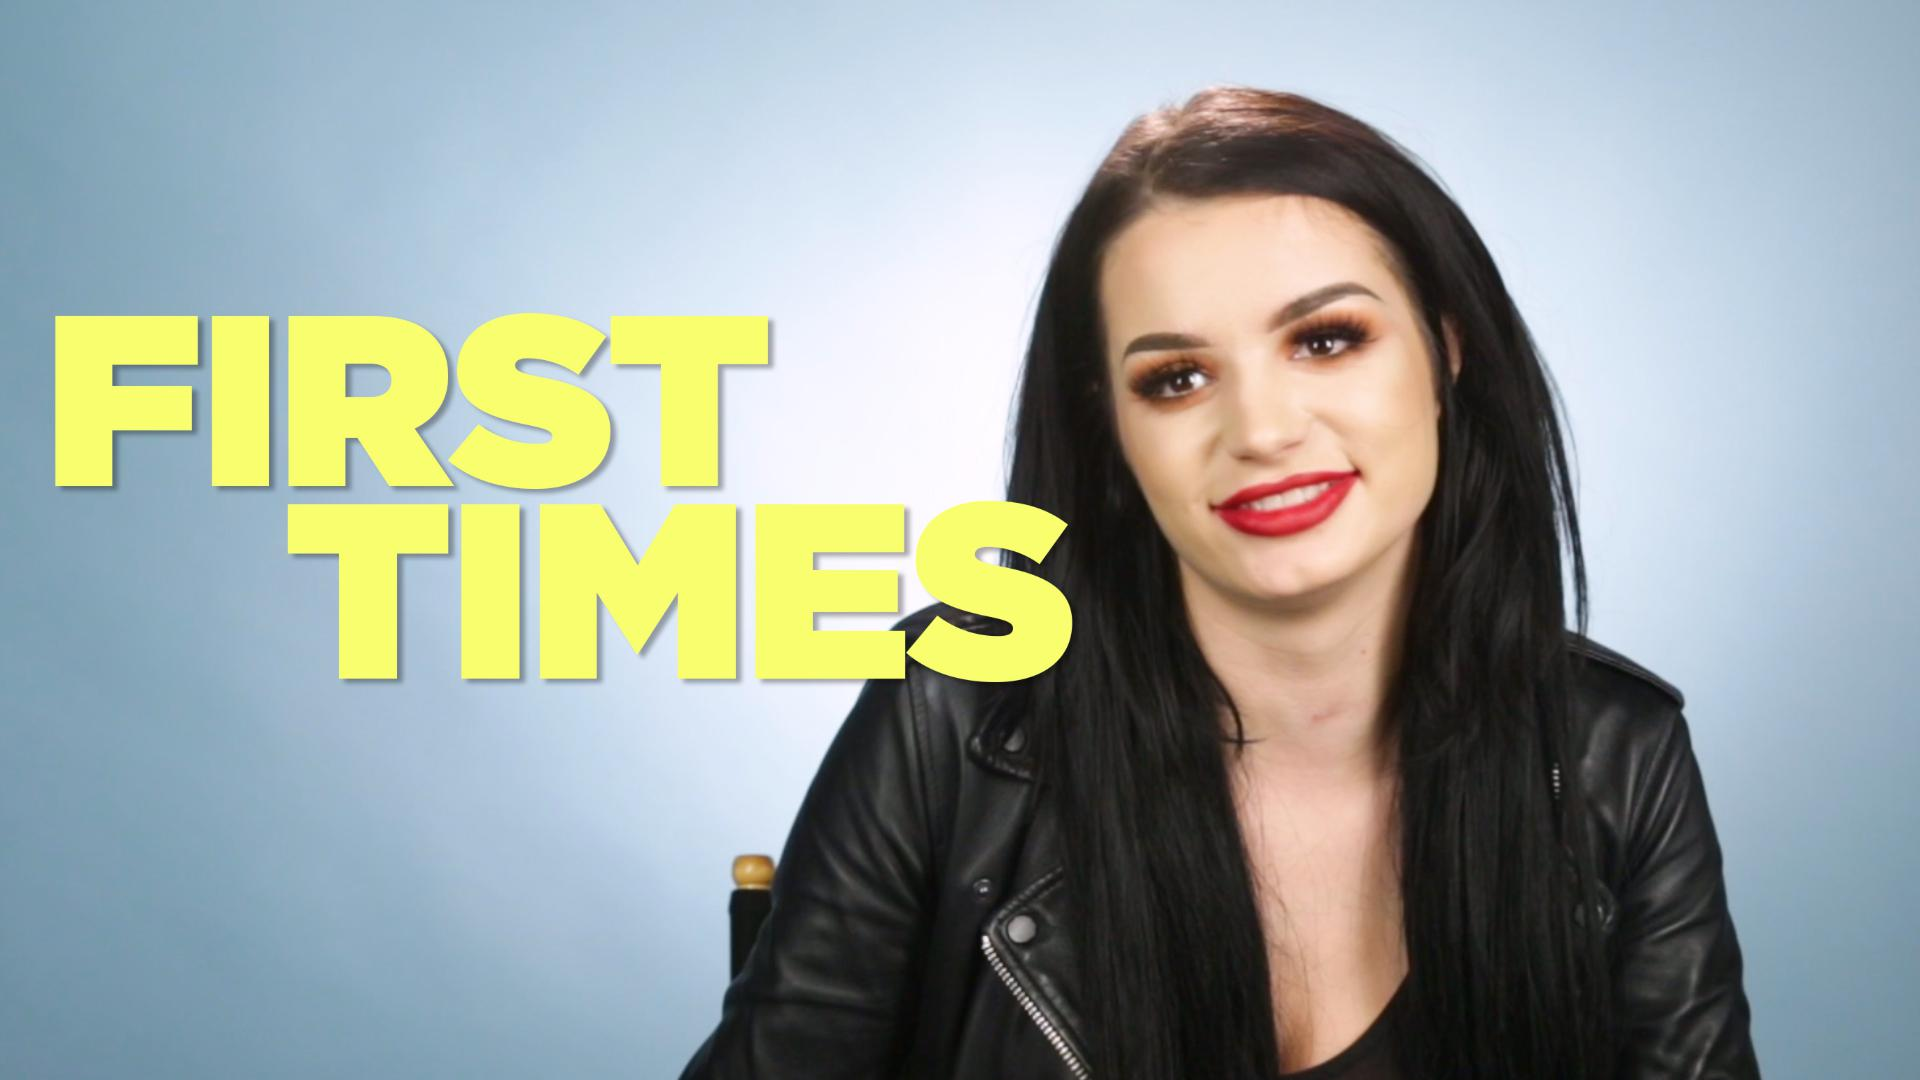 BuzzFeed Video - WWE's Diva Paige Tells Us About Her First Times